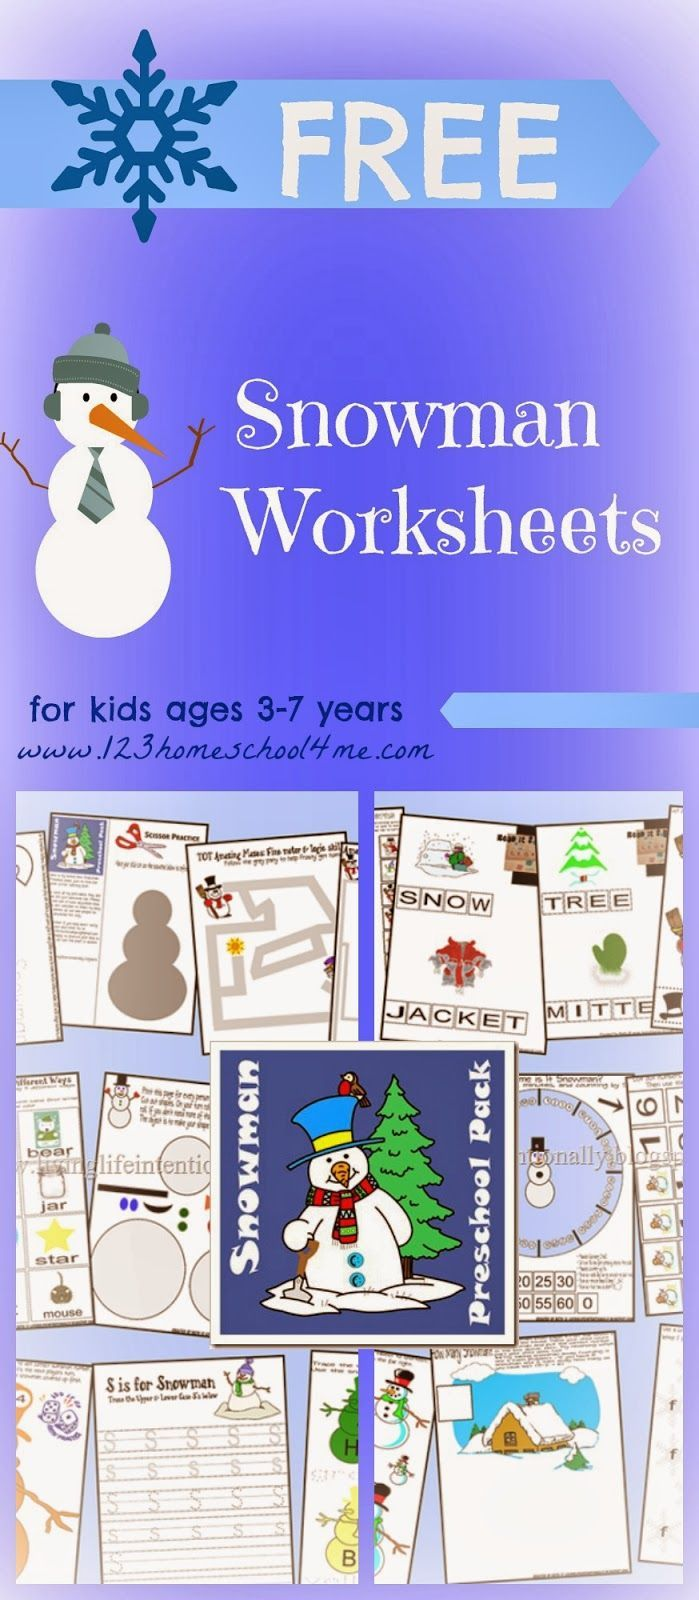 {FREE} Snowman Preschool Pack worksheets for kids - FREE snowman worksheets for toddler, preschool, kindergarten, and 1st grade